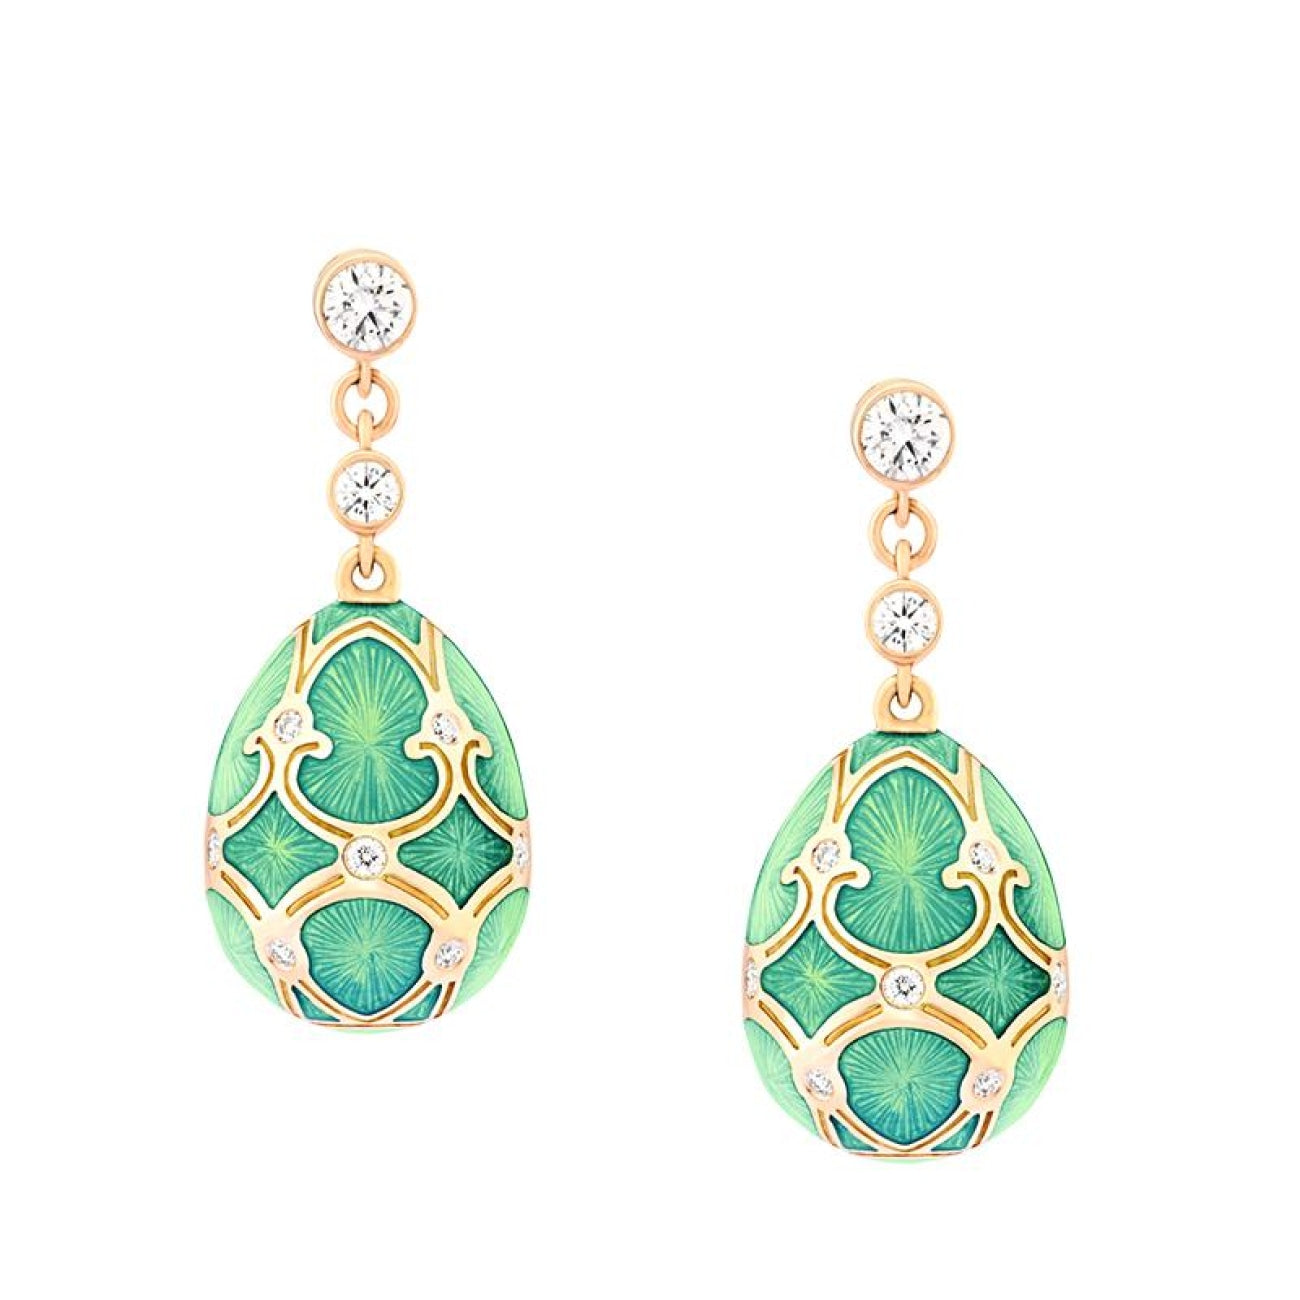 Fabergé Jewelry - Palais Tsarskoye Selo Turquoise Earrings | Manfredi Jewels